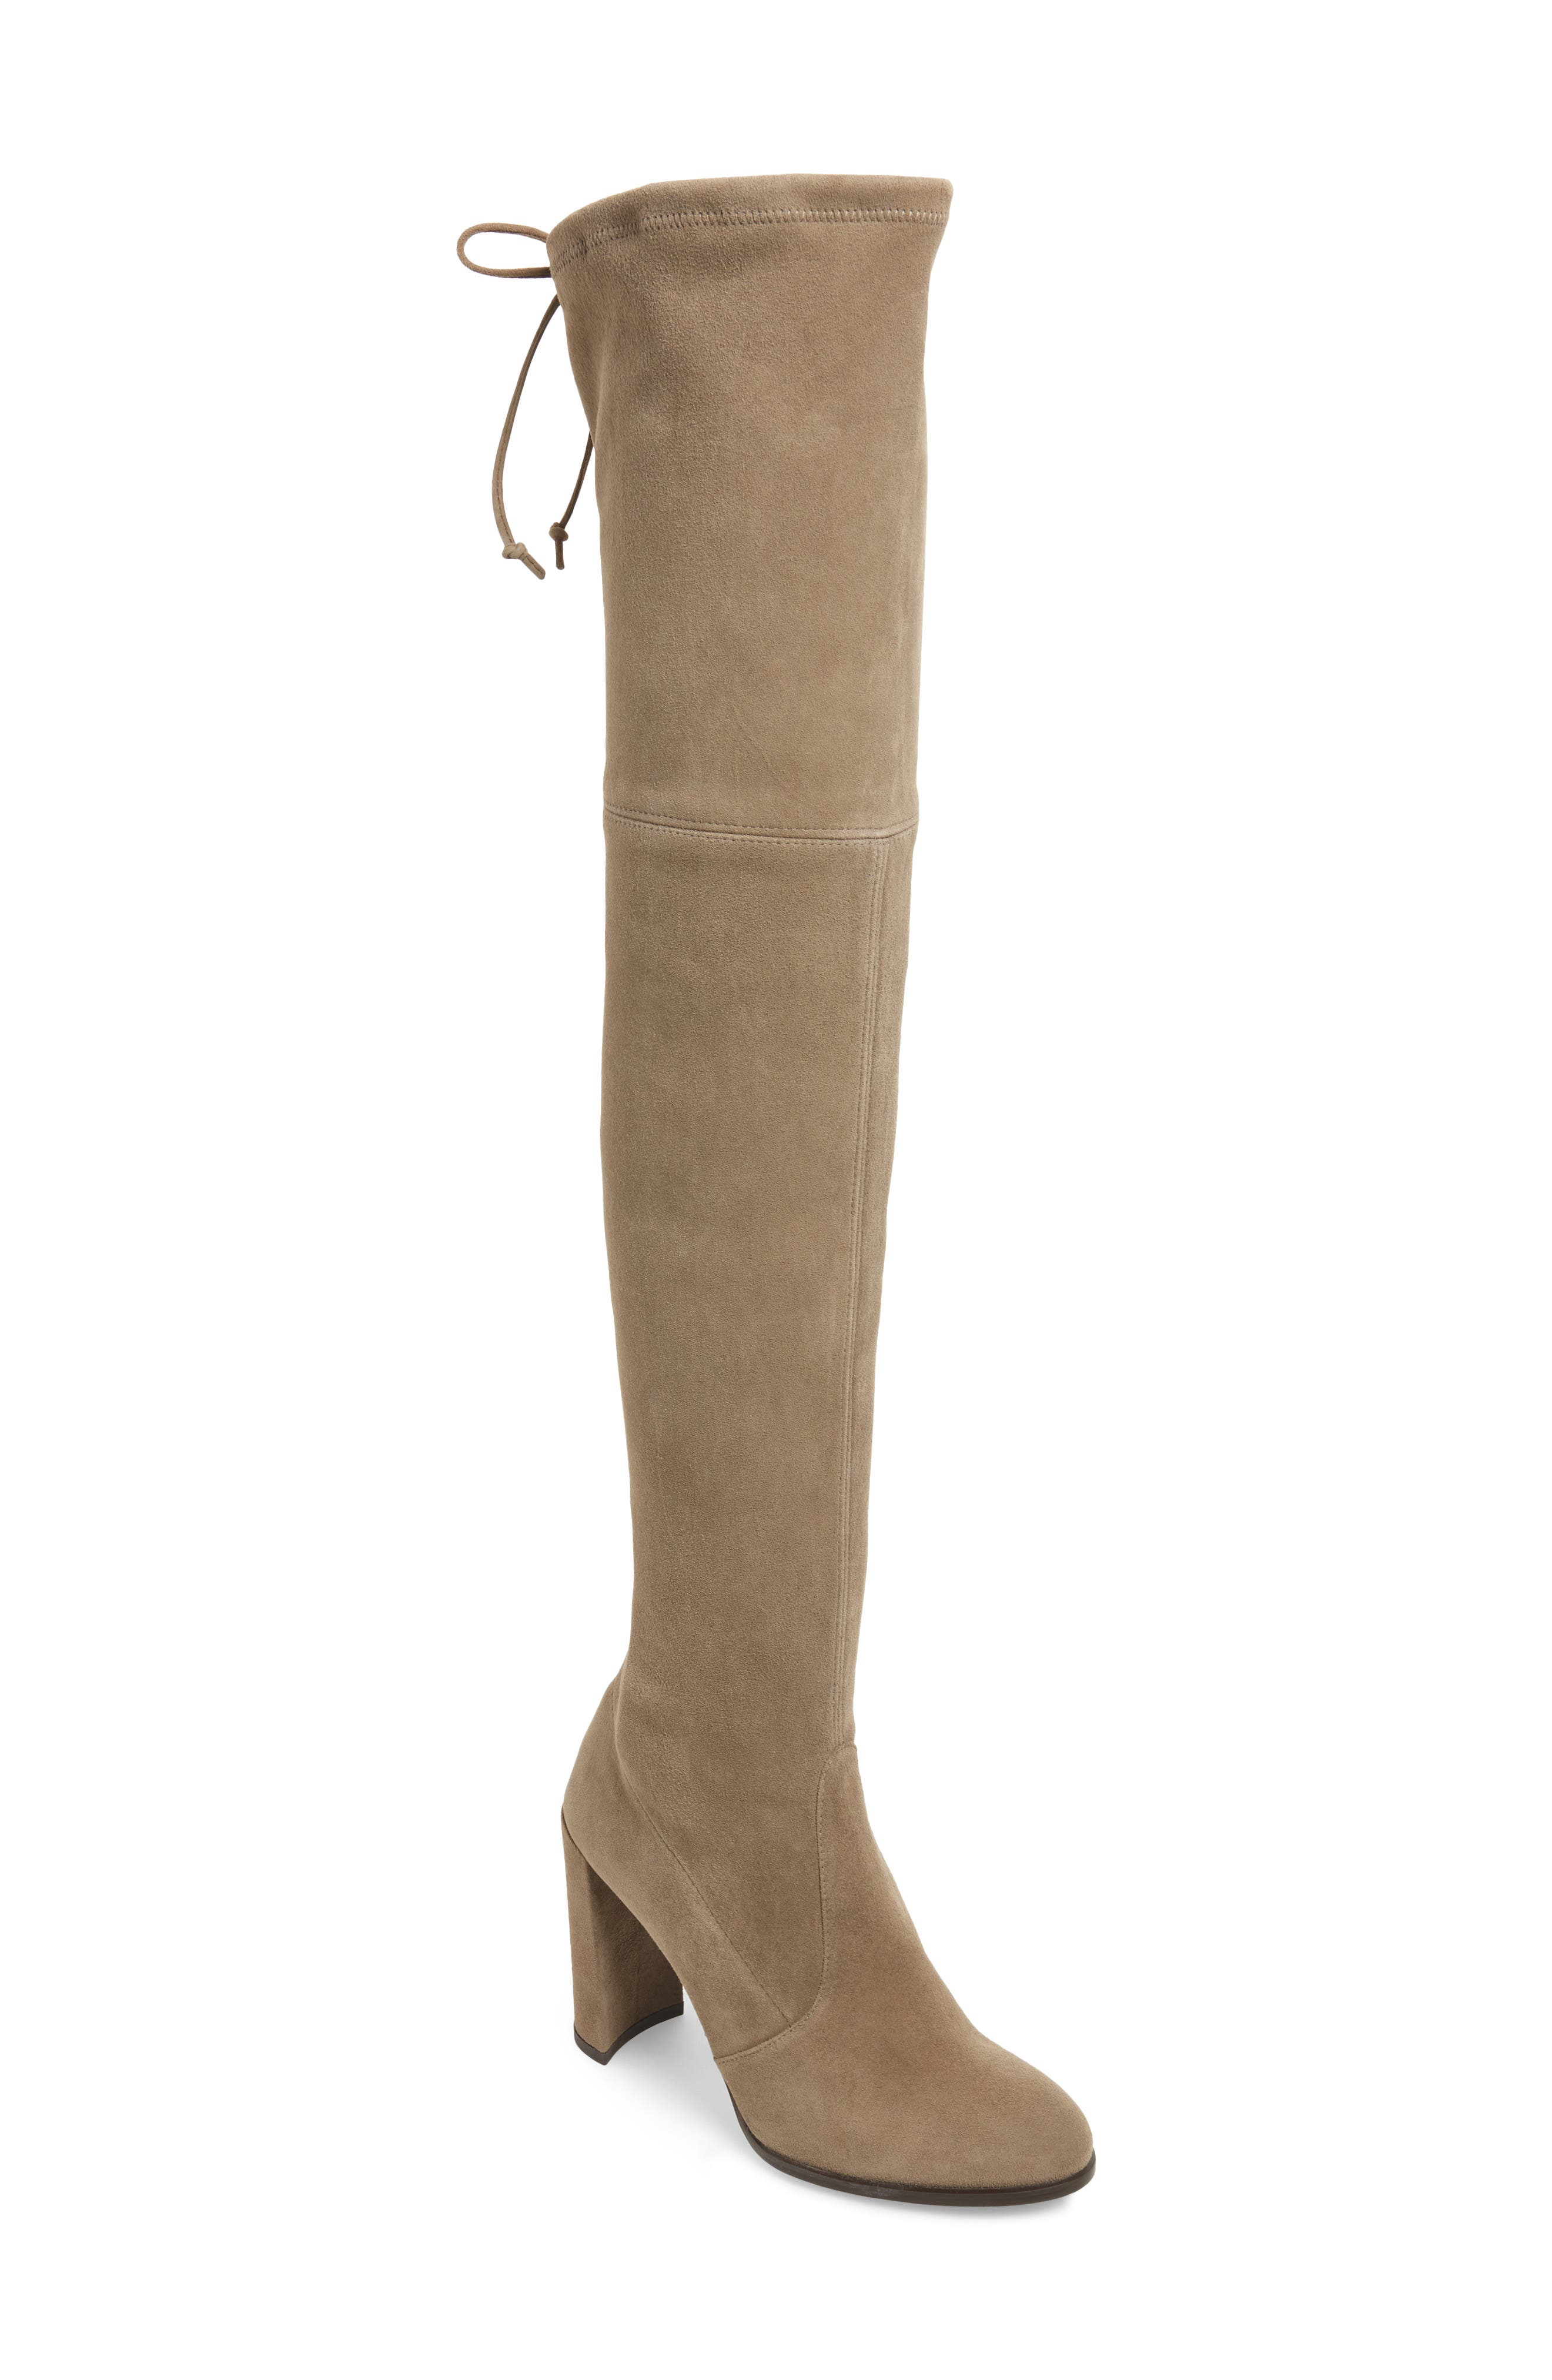 Hiline Over the Knee Boot,                         Main,                         color, Praline Suede